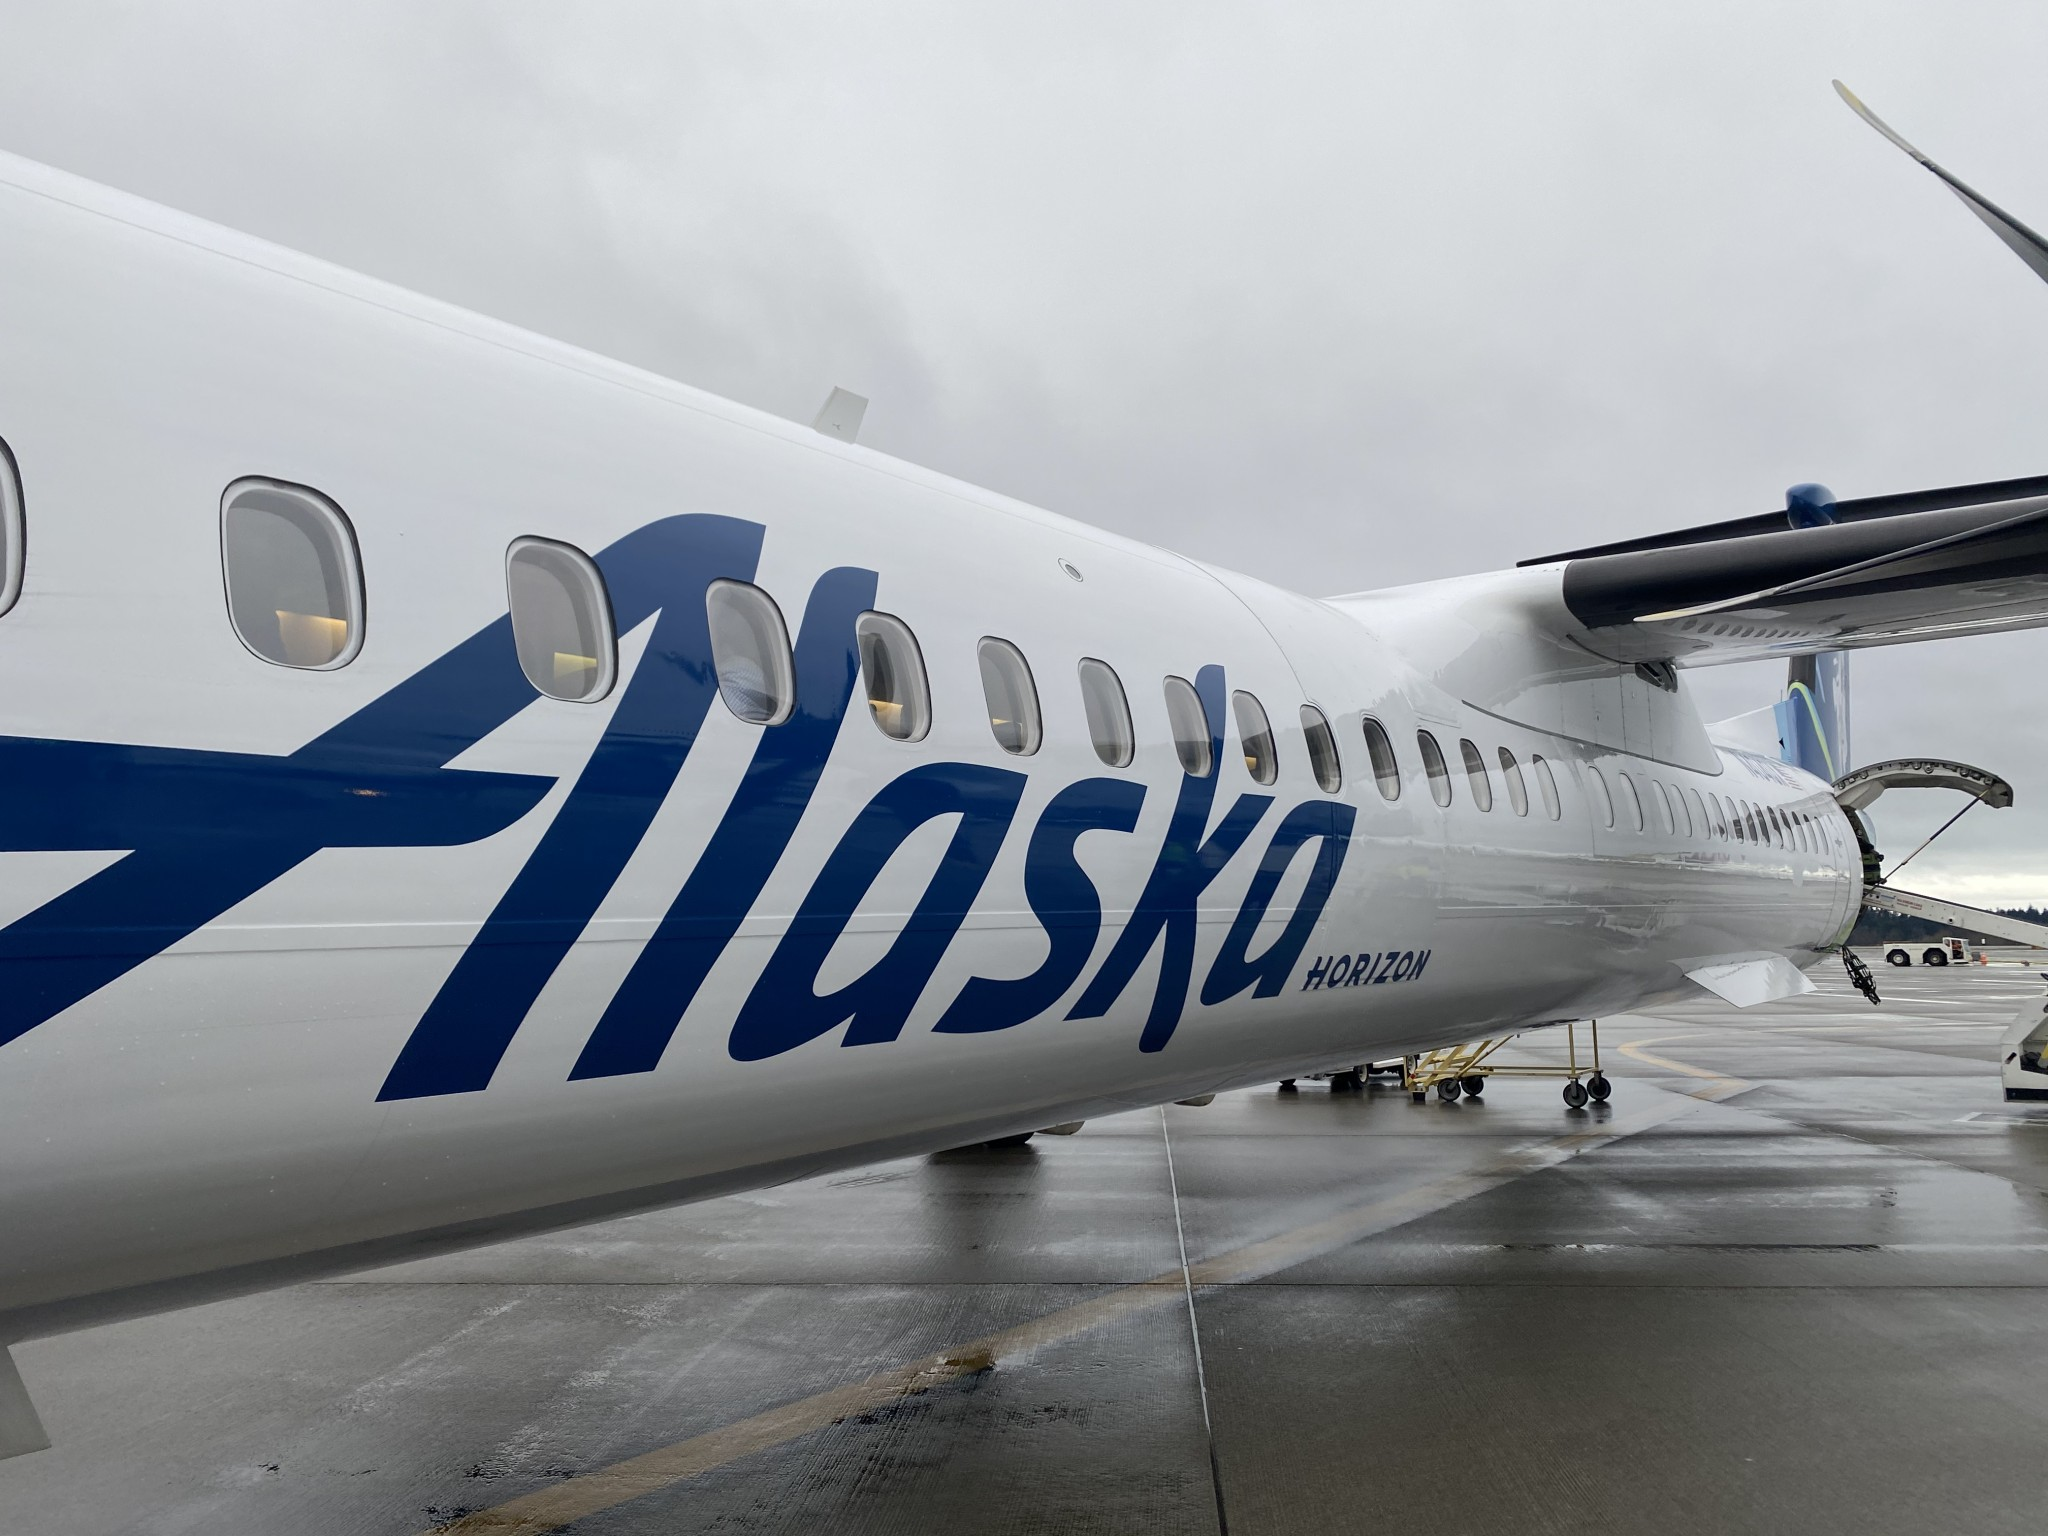 Alaska Airlines to permanently ban guests not complying with mask policy